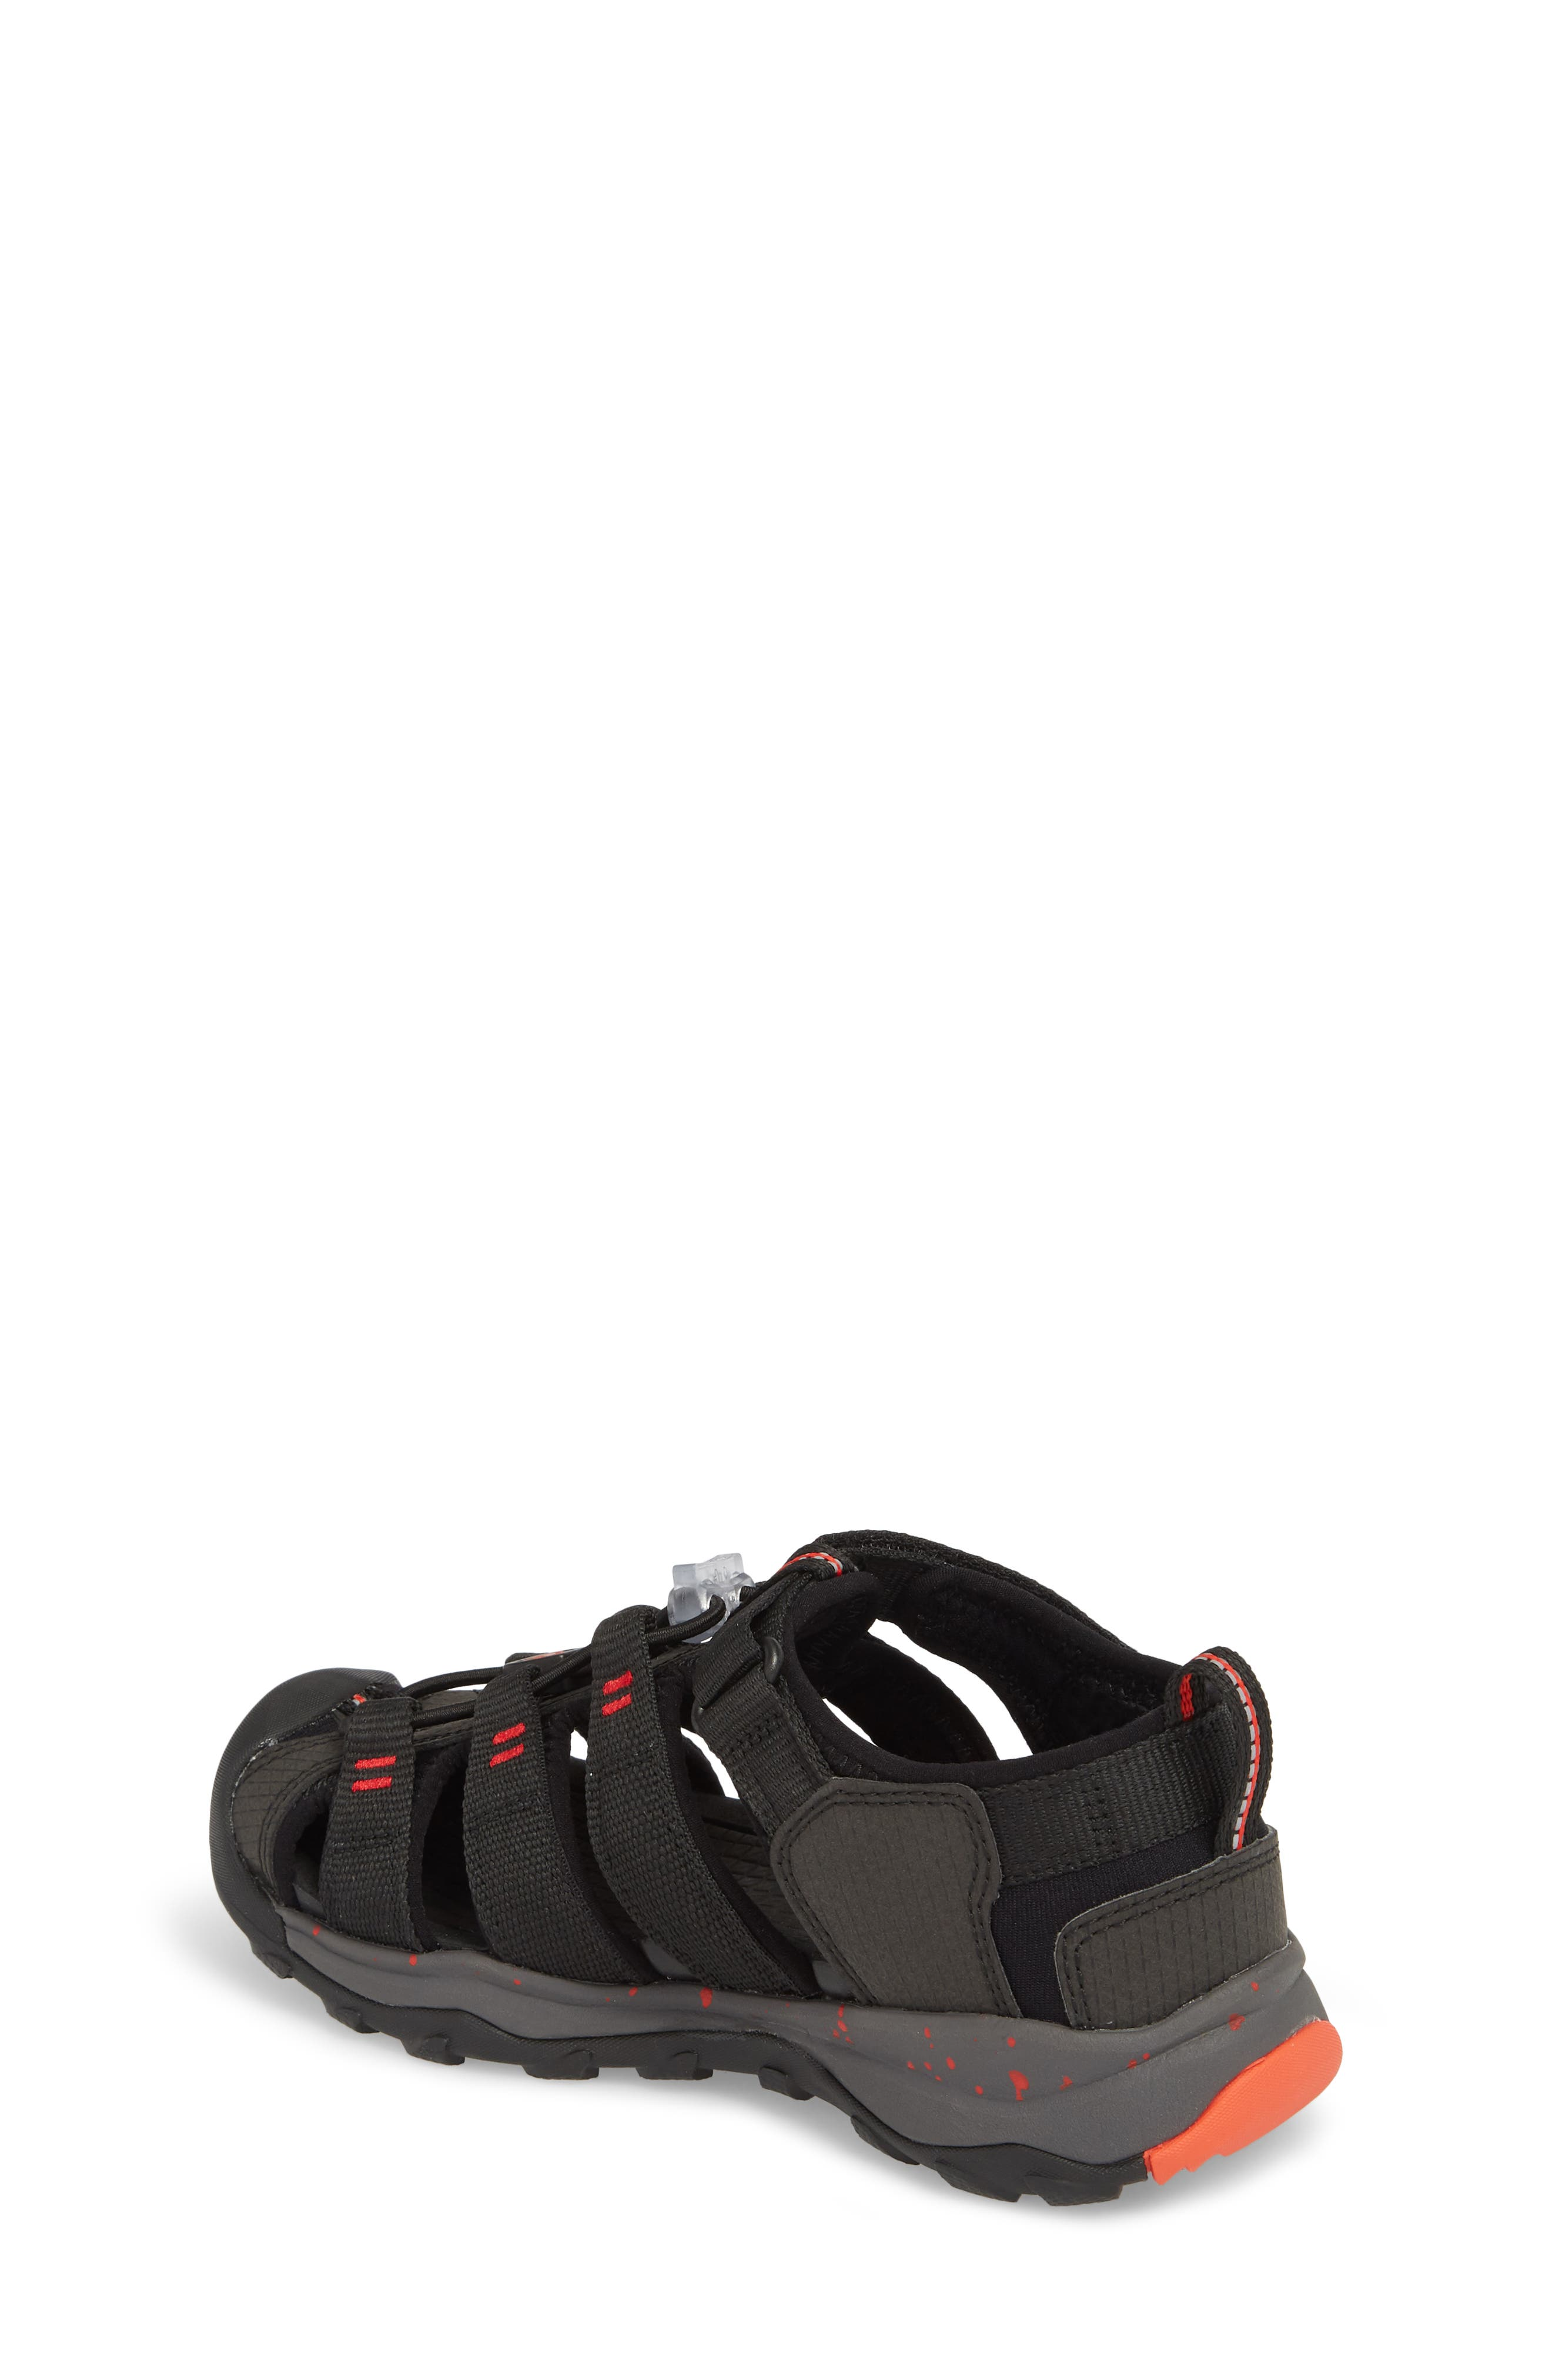 Newport Neo H2 Water Friendly Sandal,                             Alternate thumbnail 2, color,                             Black/ Fiery Red